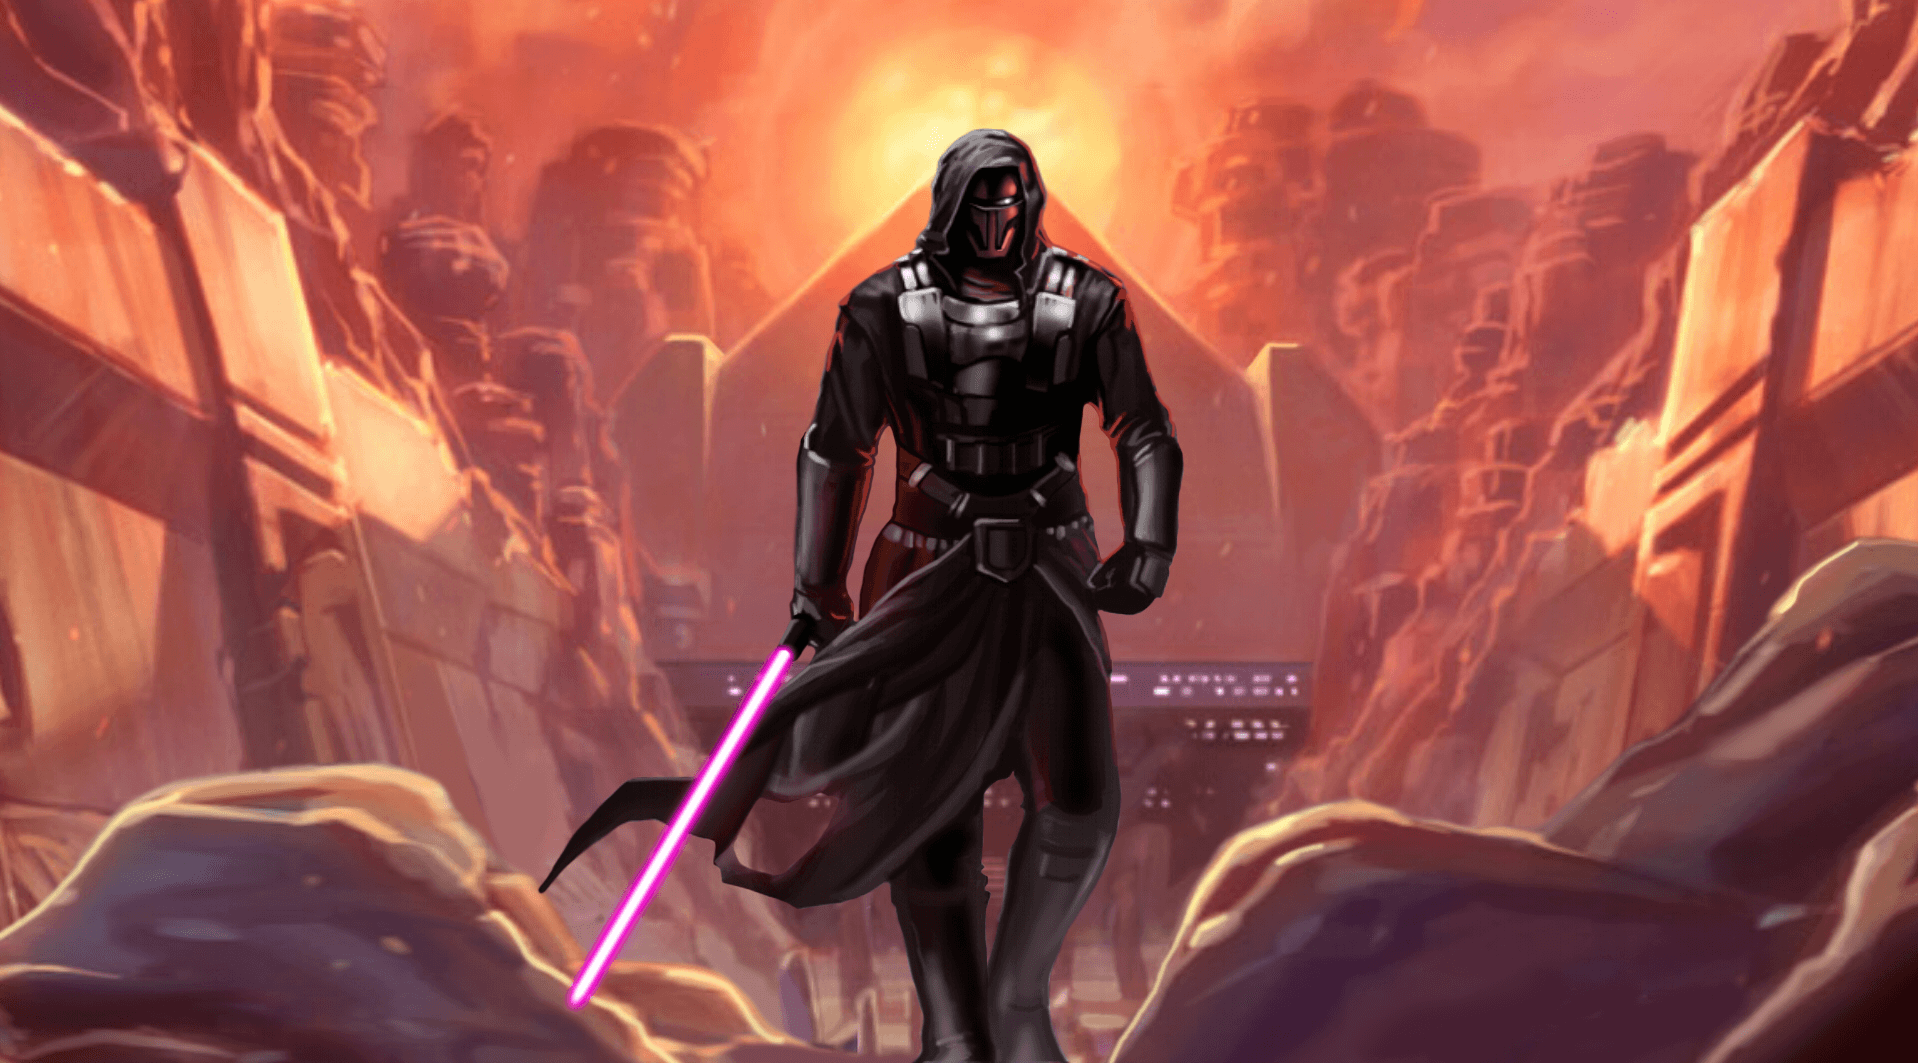 darth revan phone wallpaper - photo #7